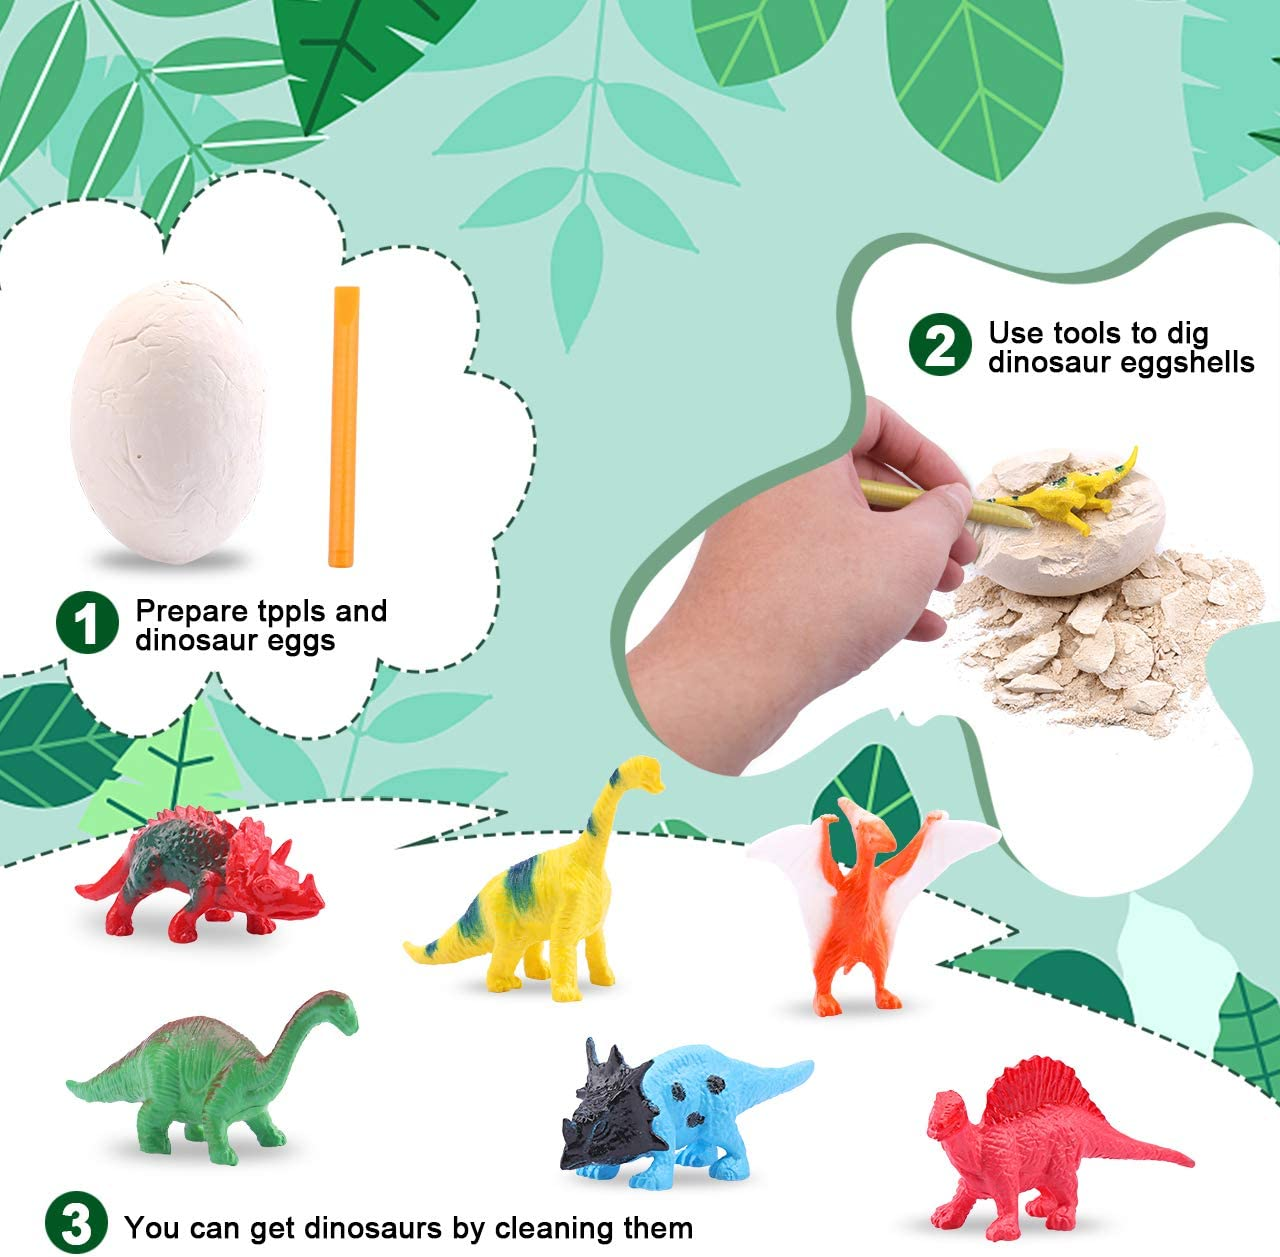 Dig it Up Jurassic Dinosaur Eggs MindWare with Map and Identification Cards OWNONE 1 Dinosaur Eggs Set,12PCS Dino Egg Excavation Discover The Dinosaurs Easter Gift for Kids Children Boys Girls